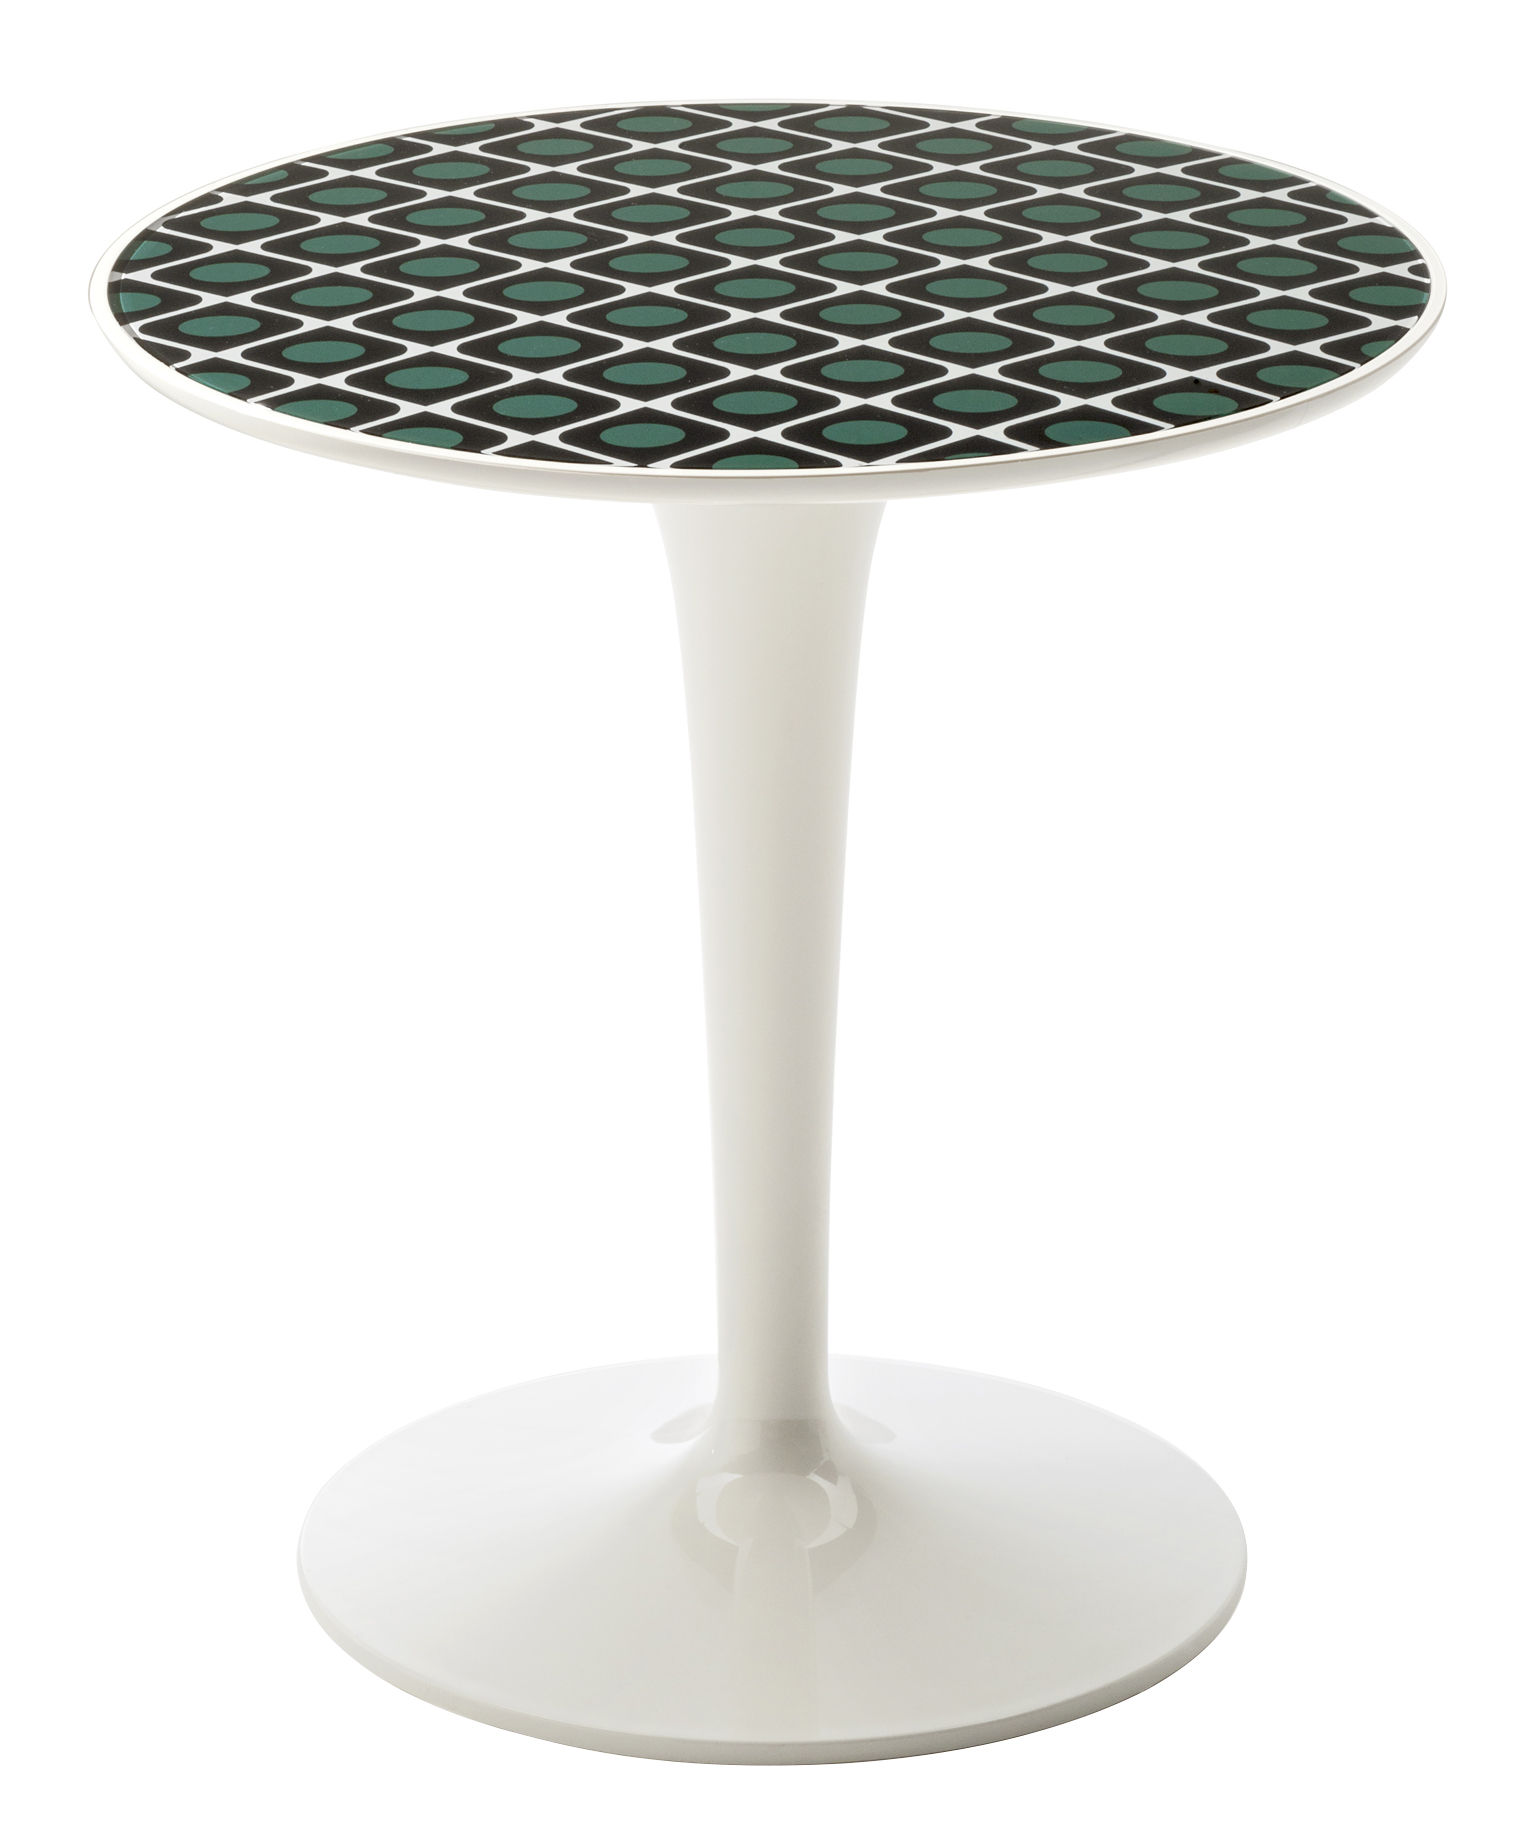 Mobilier - Tables basses - Table d'appoint Tip Top La Double J / Plateau PMMA - Kartell - Olive / Pied blanc - PMMA